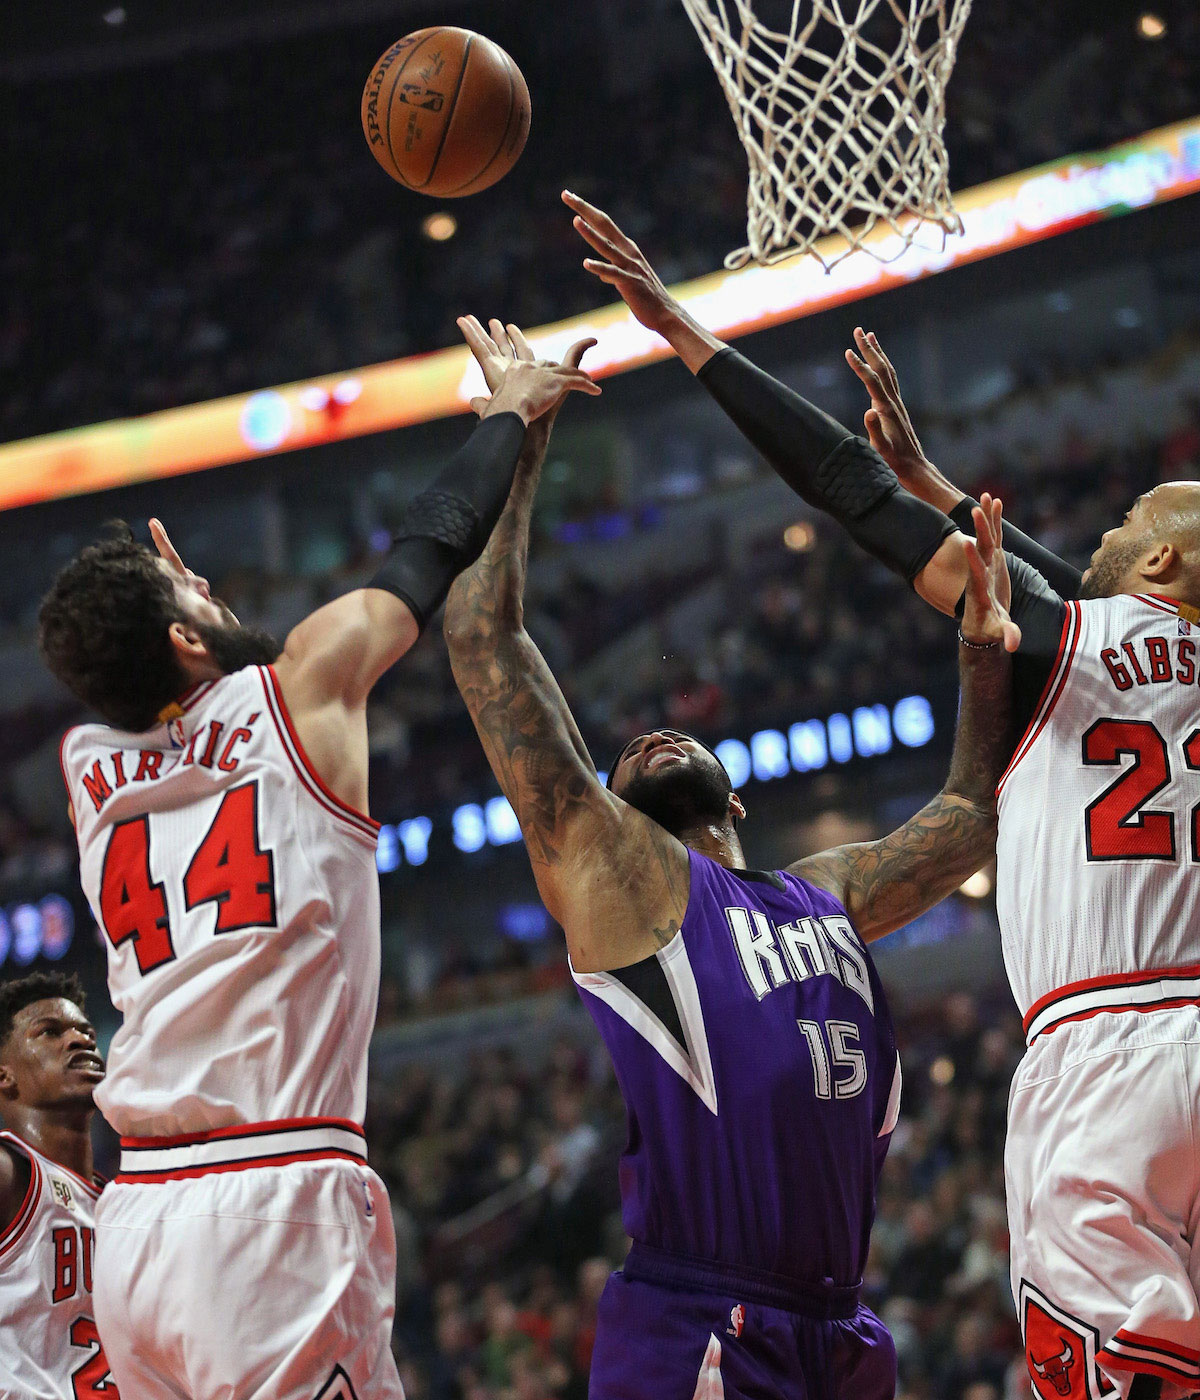 DeMarcus Cousins #15 of the Sacramento Kings Battles for a rebound between Nikola Mirotic #44 and Taj Gibson #22 of the Chicago Bulls at the United Center on March 21, 2016 in Chicago, Illinois.